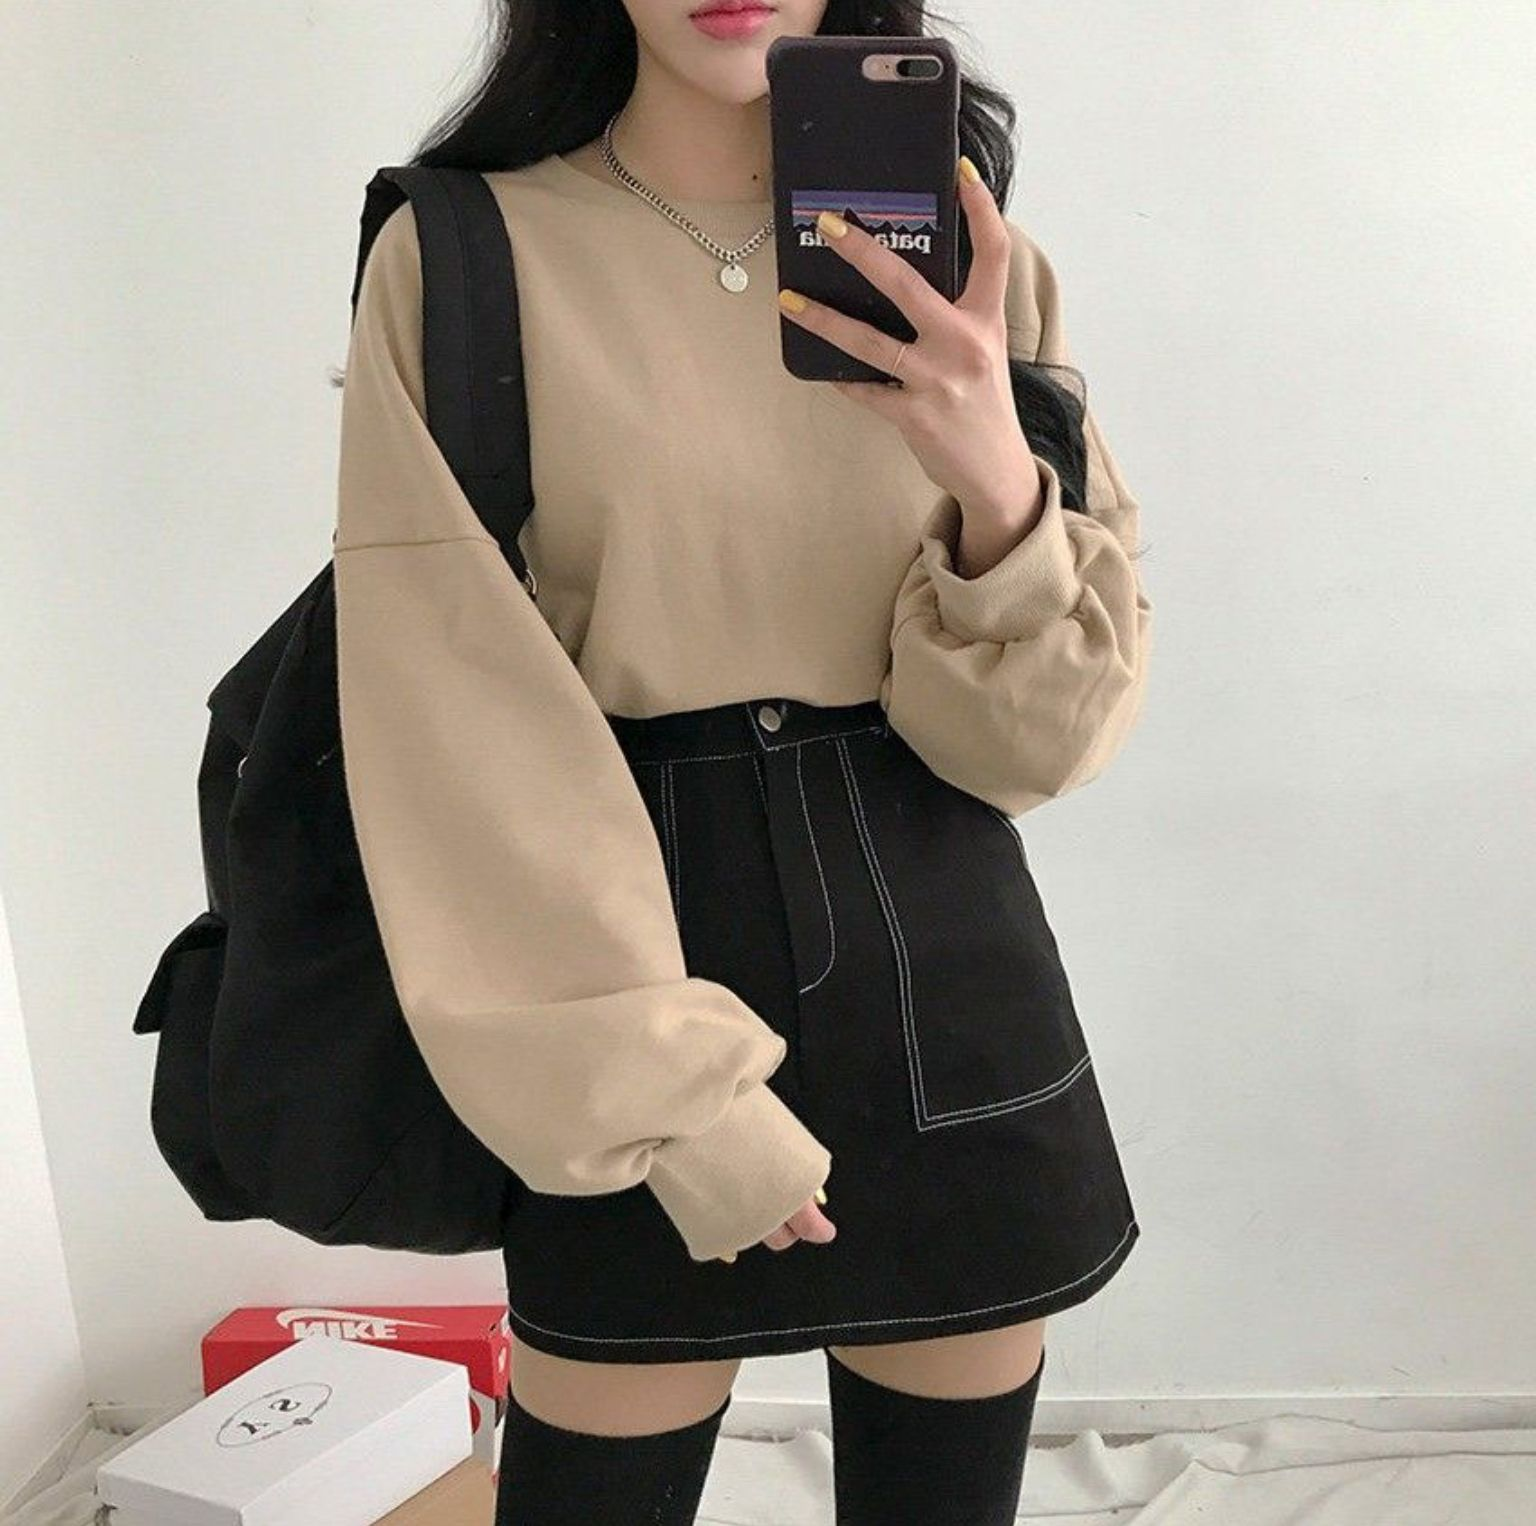 r o s i e  Kawaii fashion outfits, Cute korean fashion, Korean